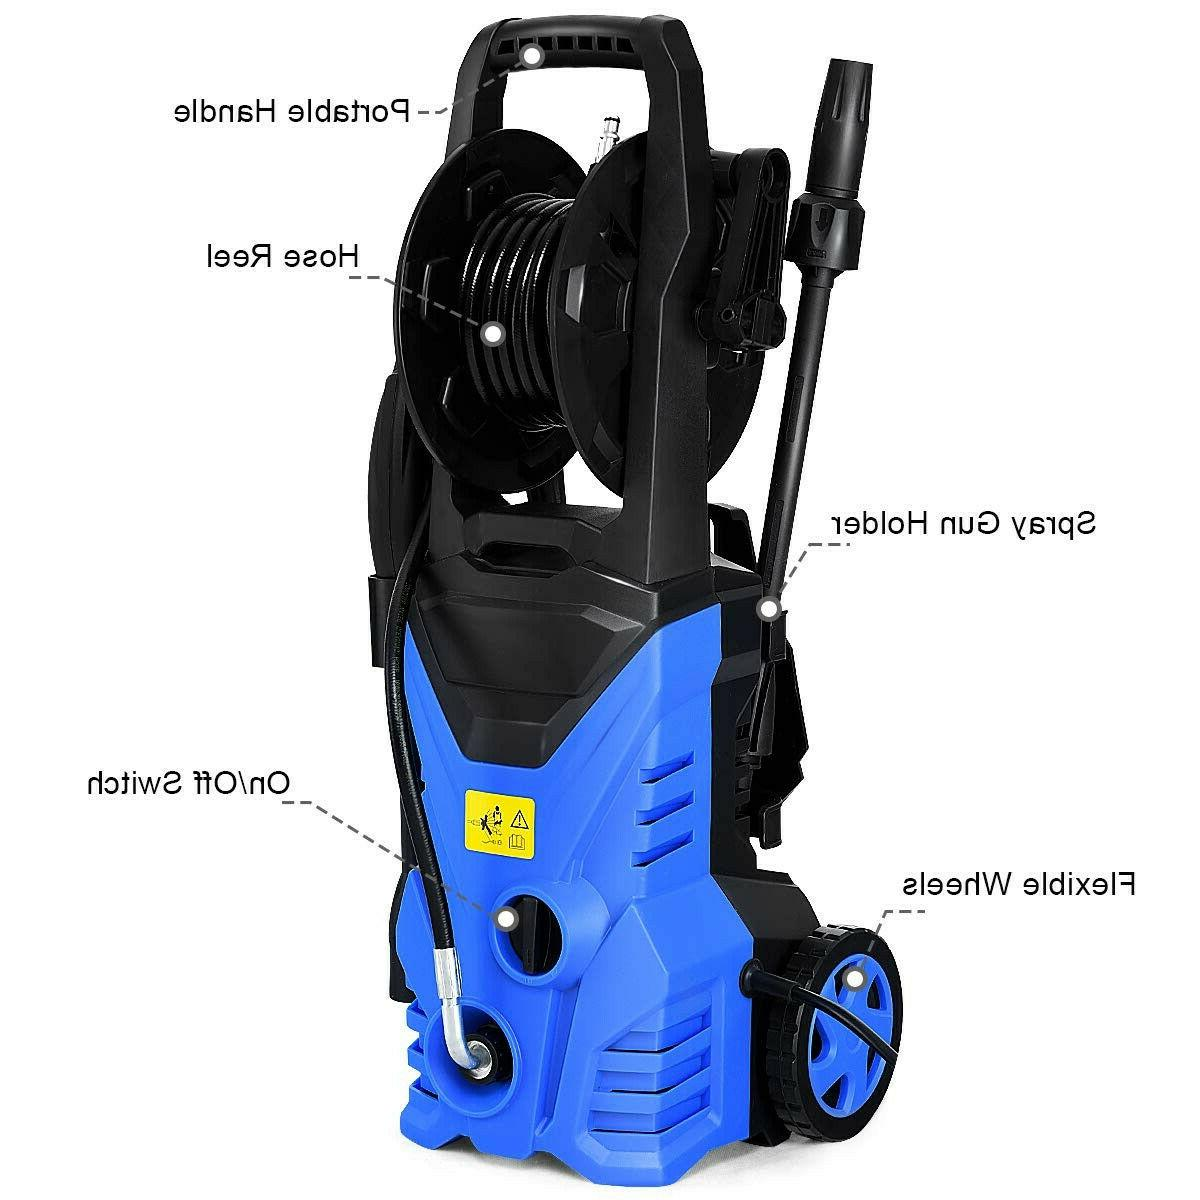 1800W 2030 PSI Pressure Washer With Hose Reel